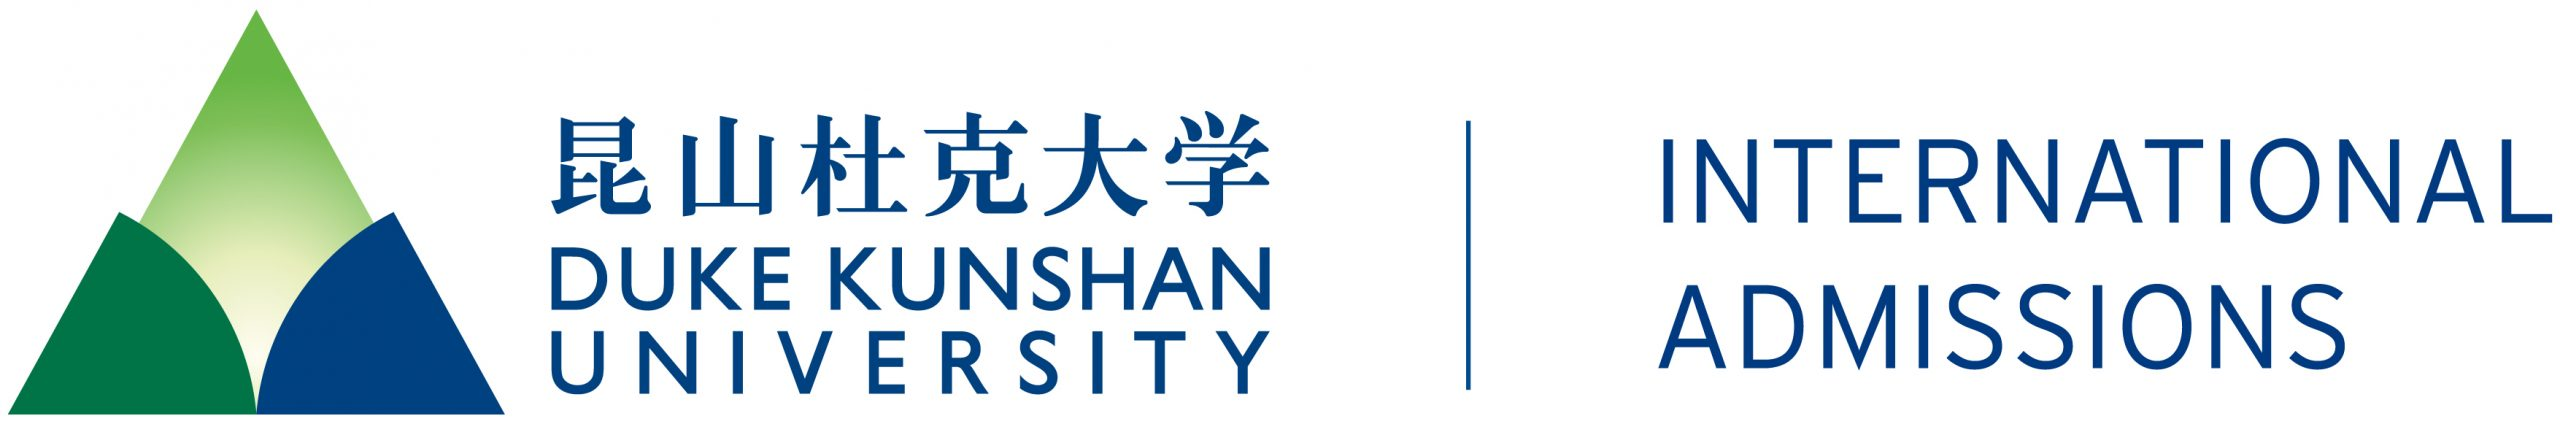 International Admissions – Duke Kunshan University